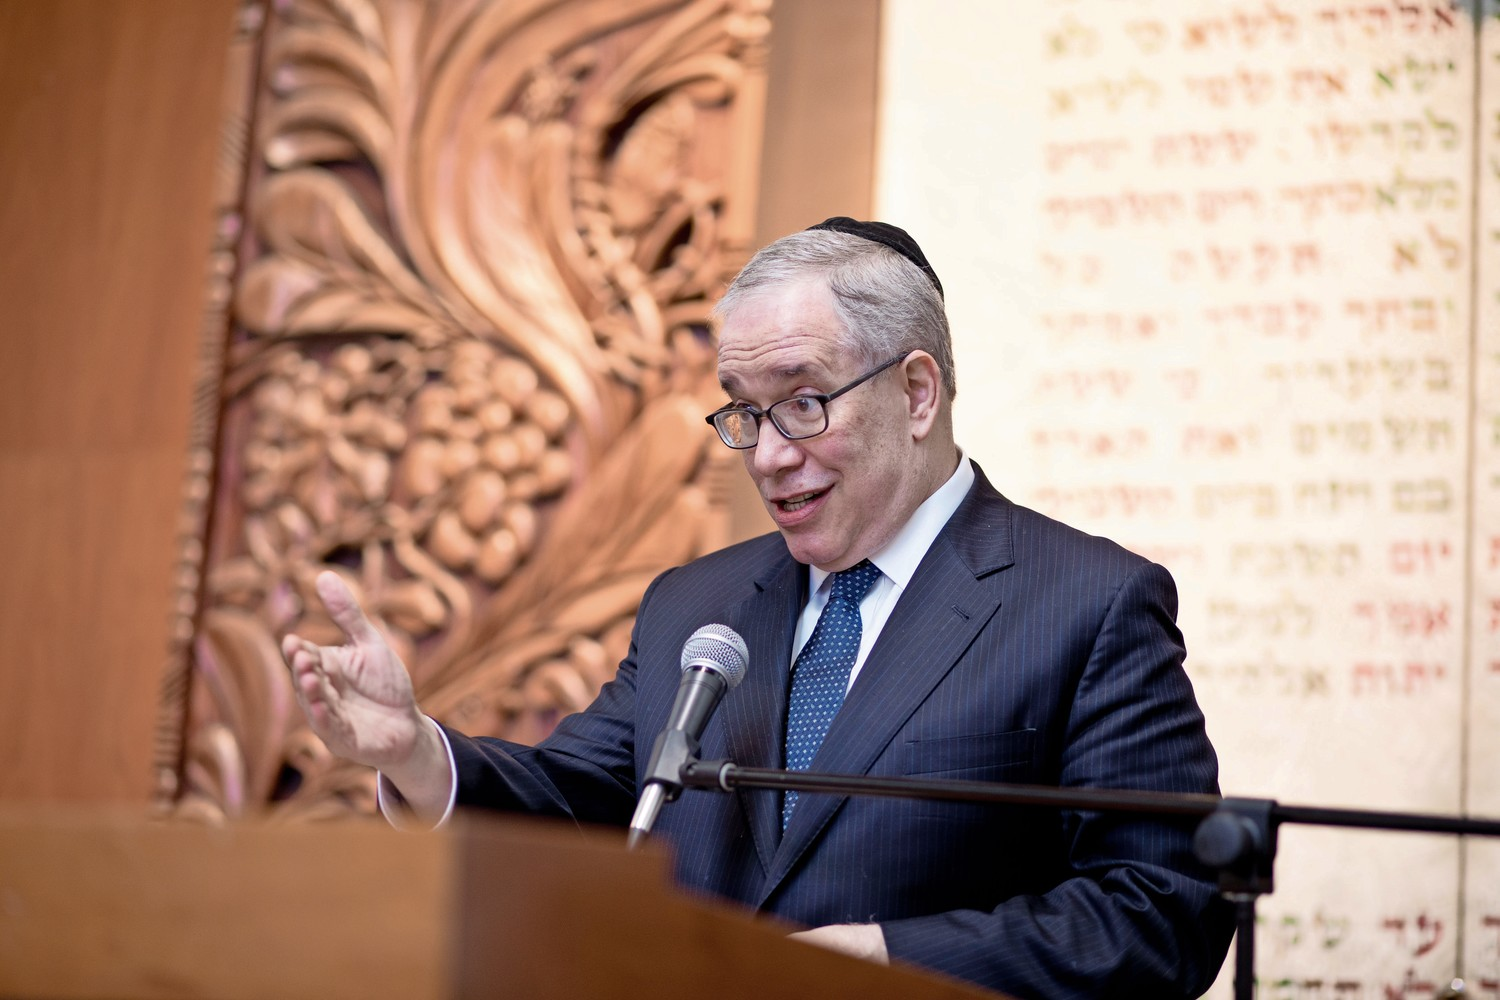 New York City comptroller Scott Stringer introduces an award for Michael Spicer, the chief executive officer of St. Joseph's Medical Center, during an awards ceremony for the Bronx Jewish Community Center's annual 'Breakfast of Champions.'